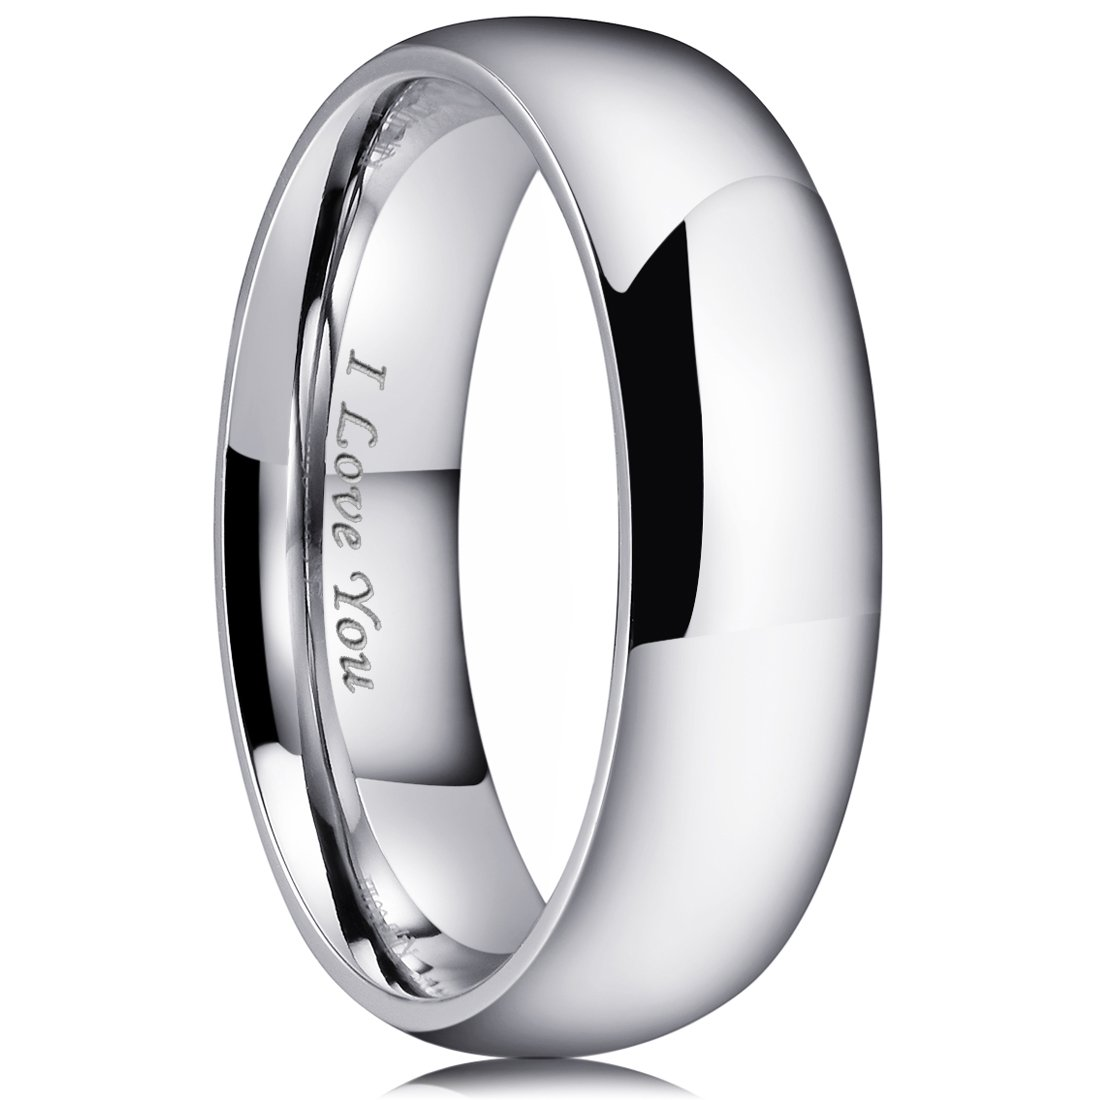 King Will BASIC 7mm Stainless Steel Ring Original Color Full High Polished with Laser Etched I Love You(10)